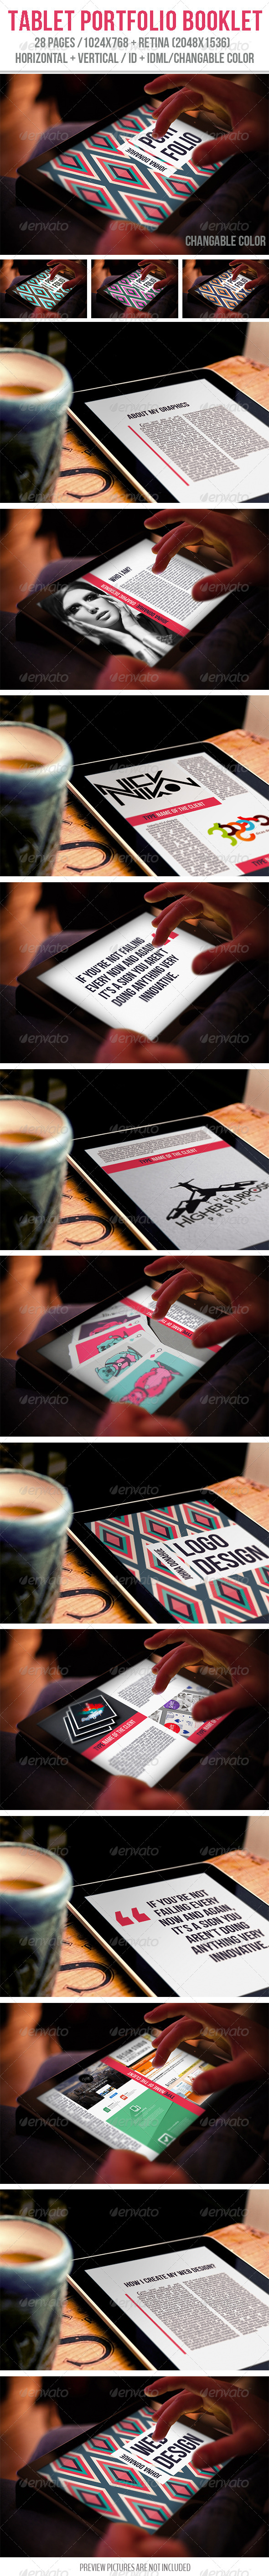 GraphicRiver Tablet Portfolio Booklet 7915036